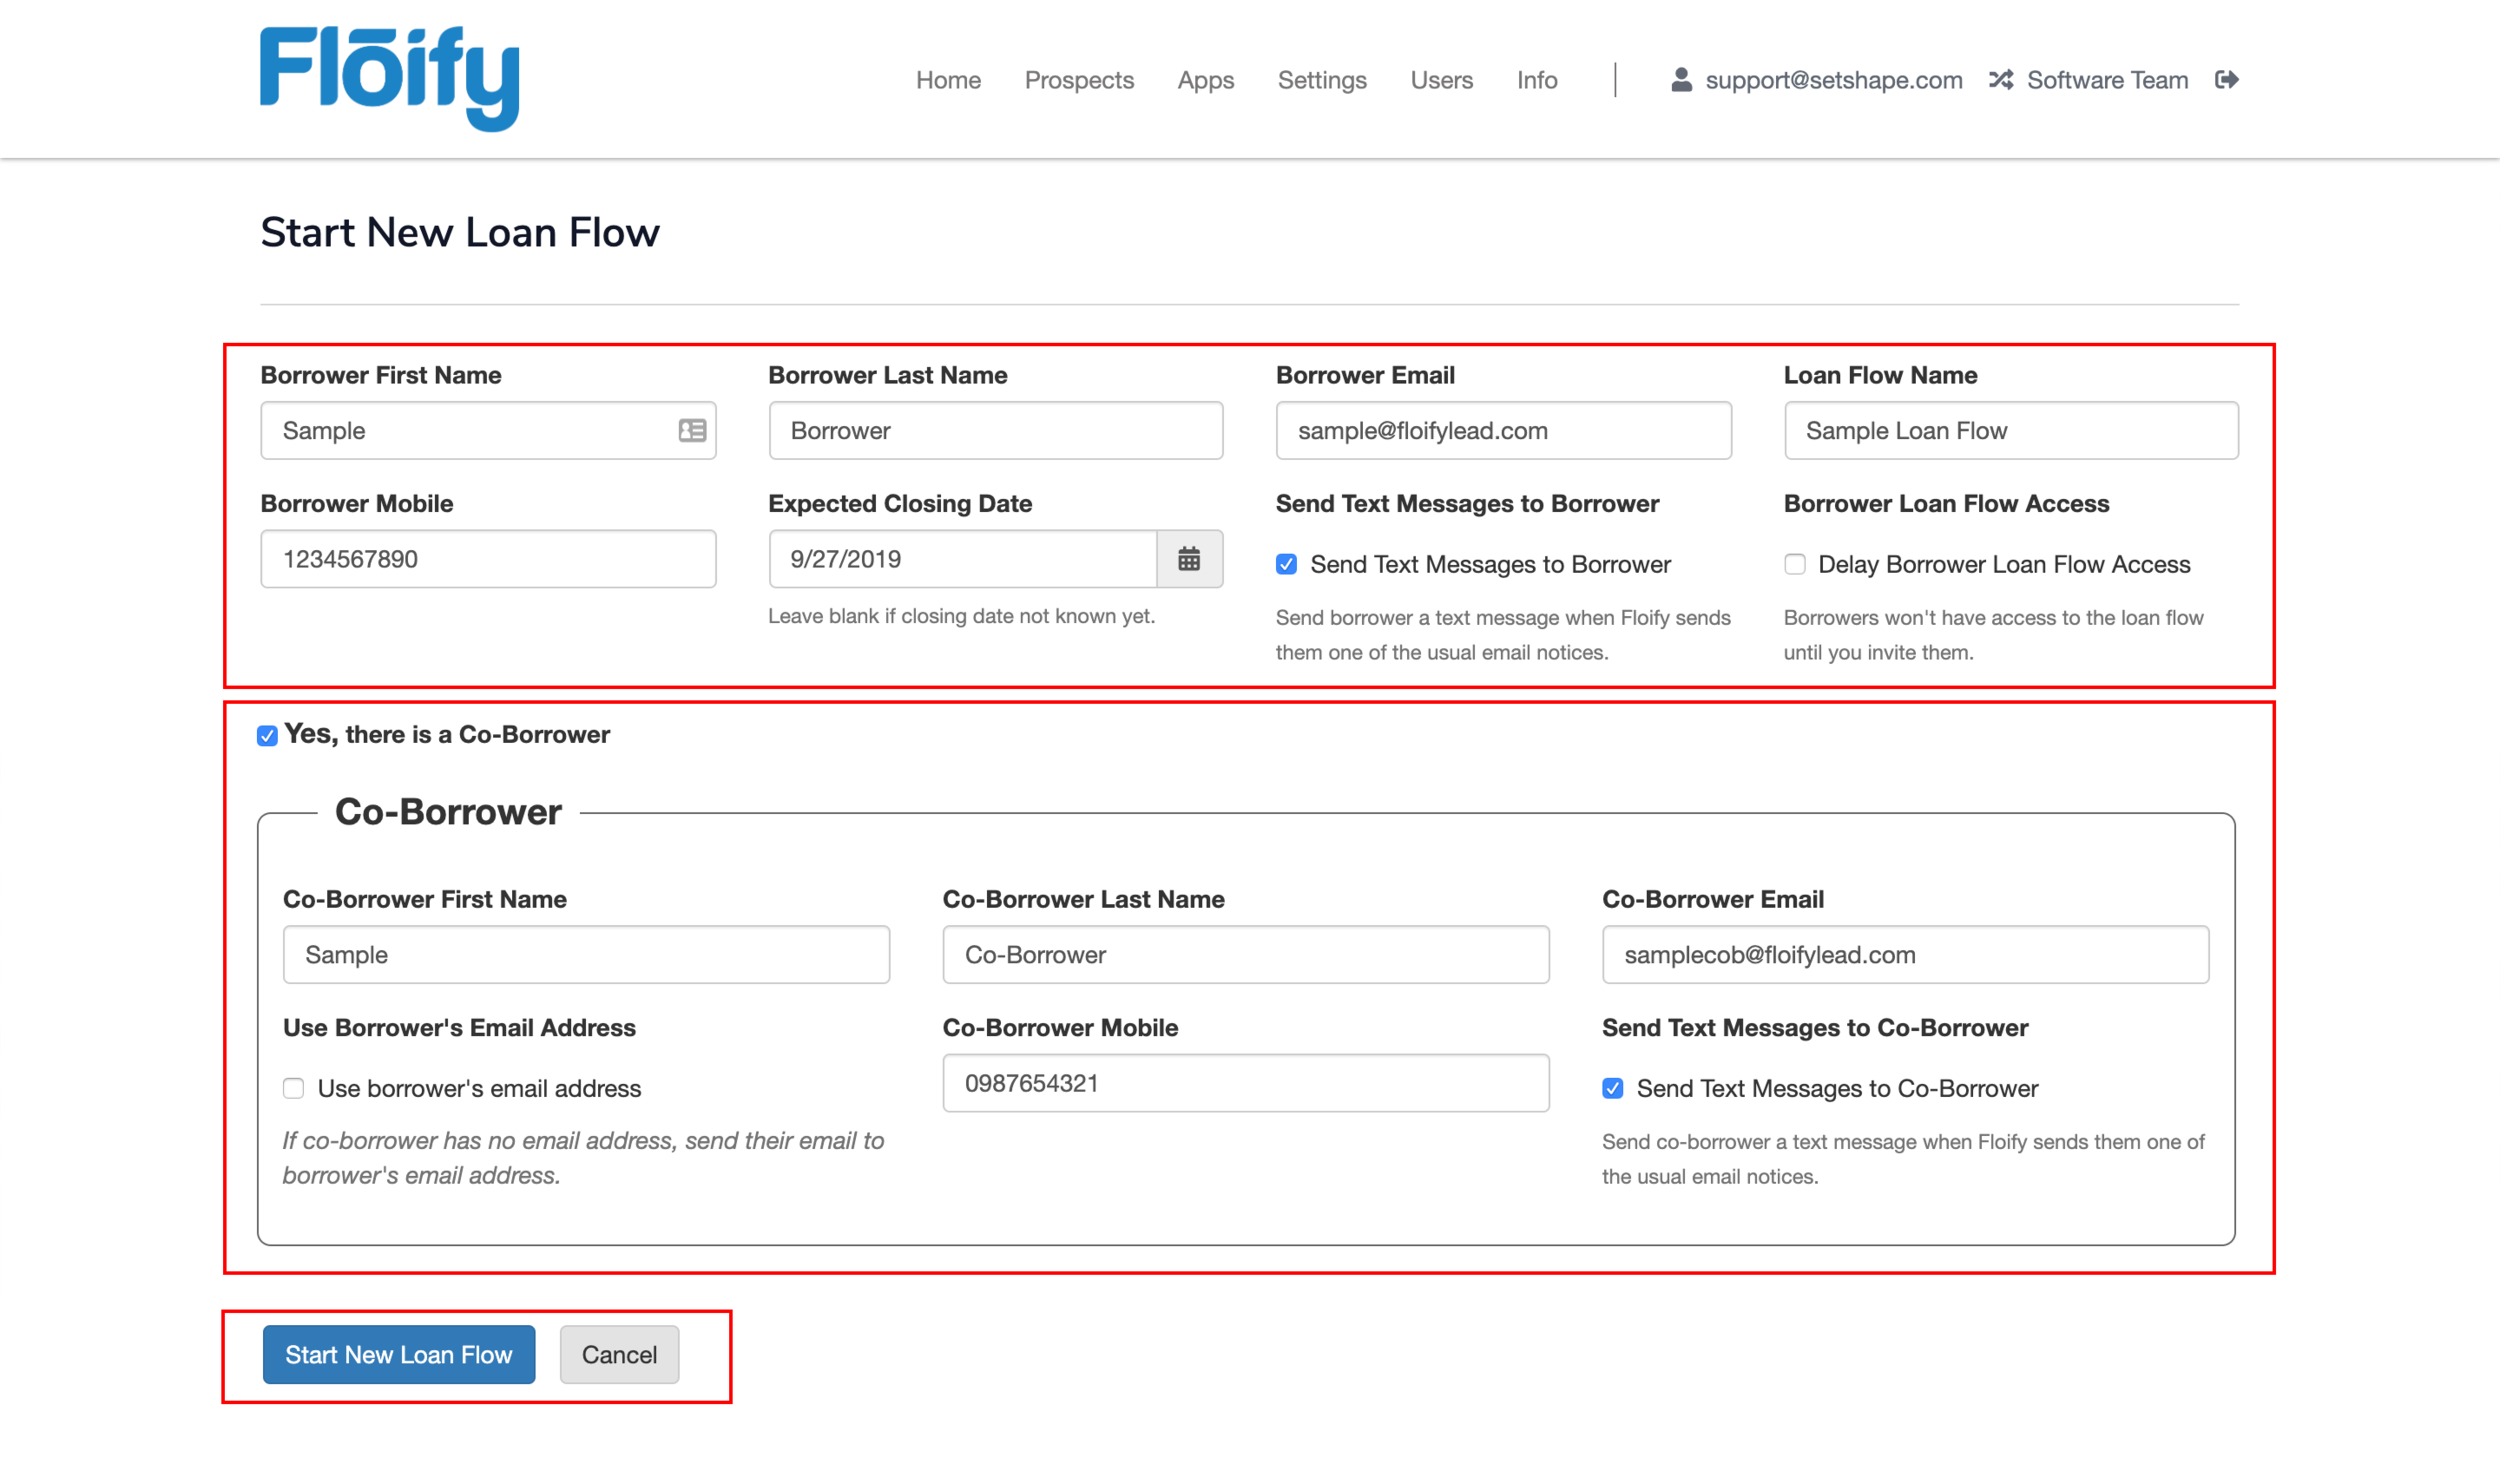 """Step 2:  Fill out the Borrower information and optional Co-Borrower and press """"Start New Loan Flow"""" at the bottom of the page.  Please note, screenshot is highlighting only the important elements of the new loan flow page."""